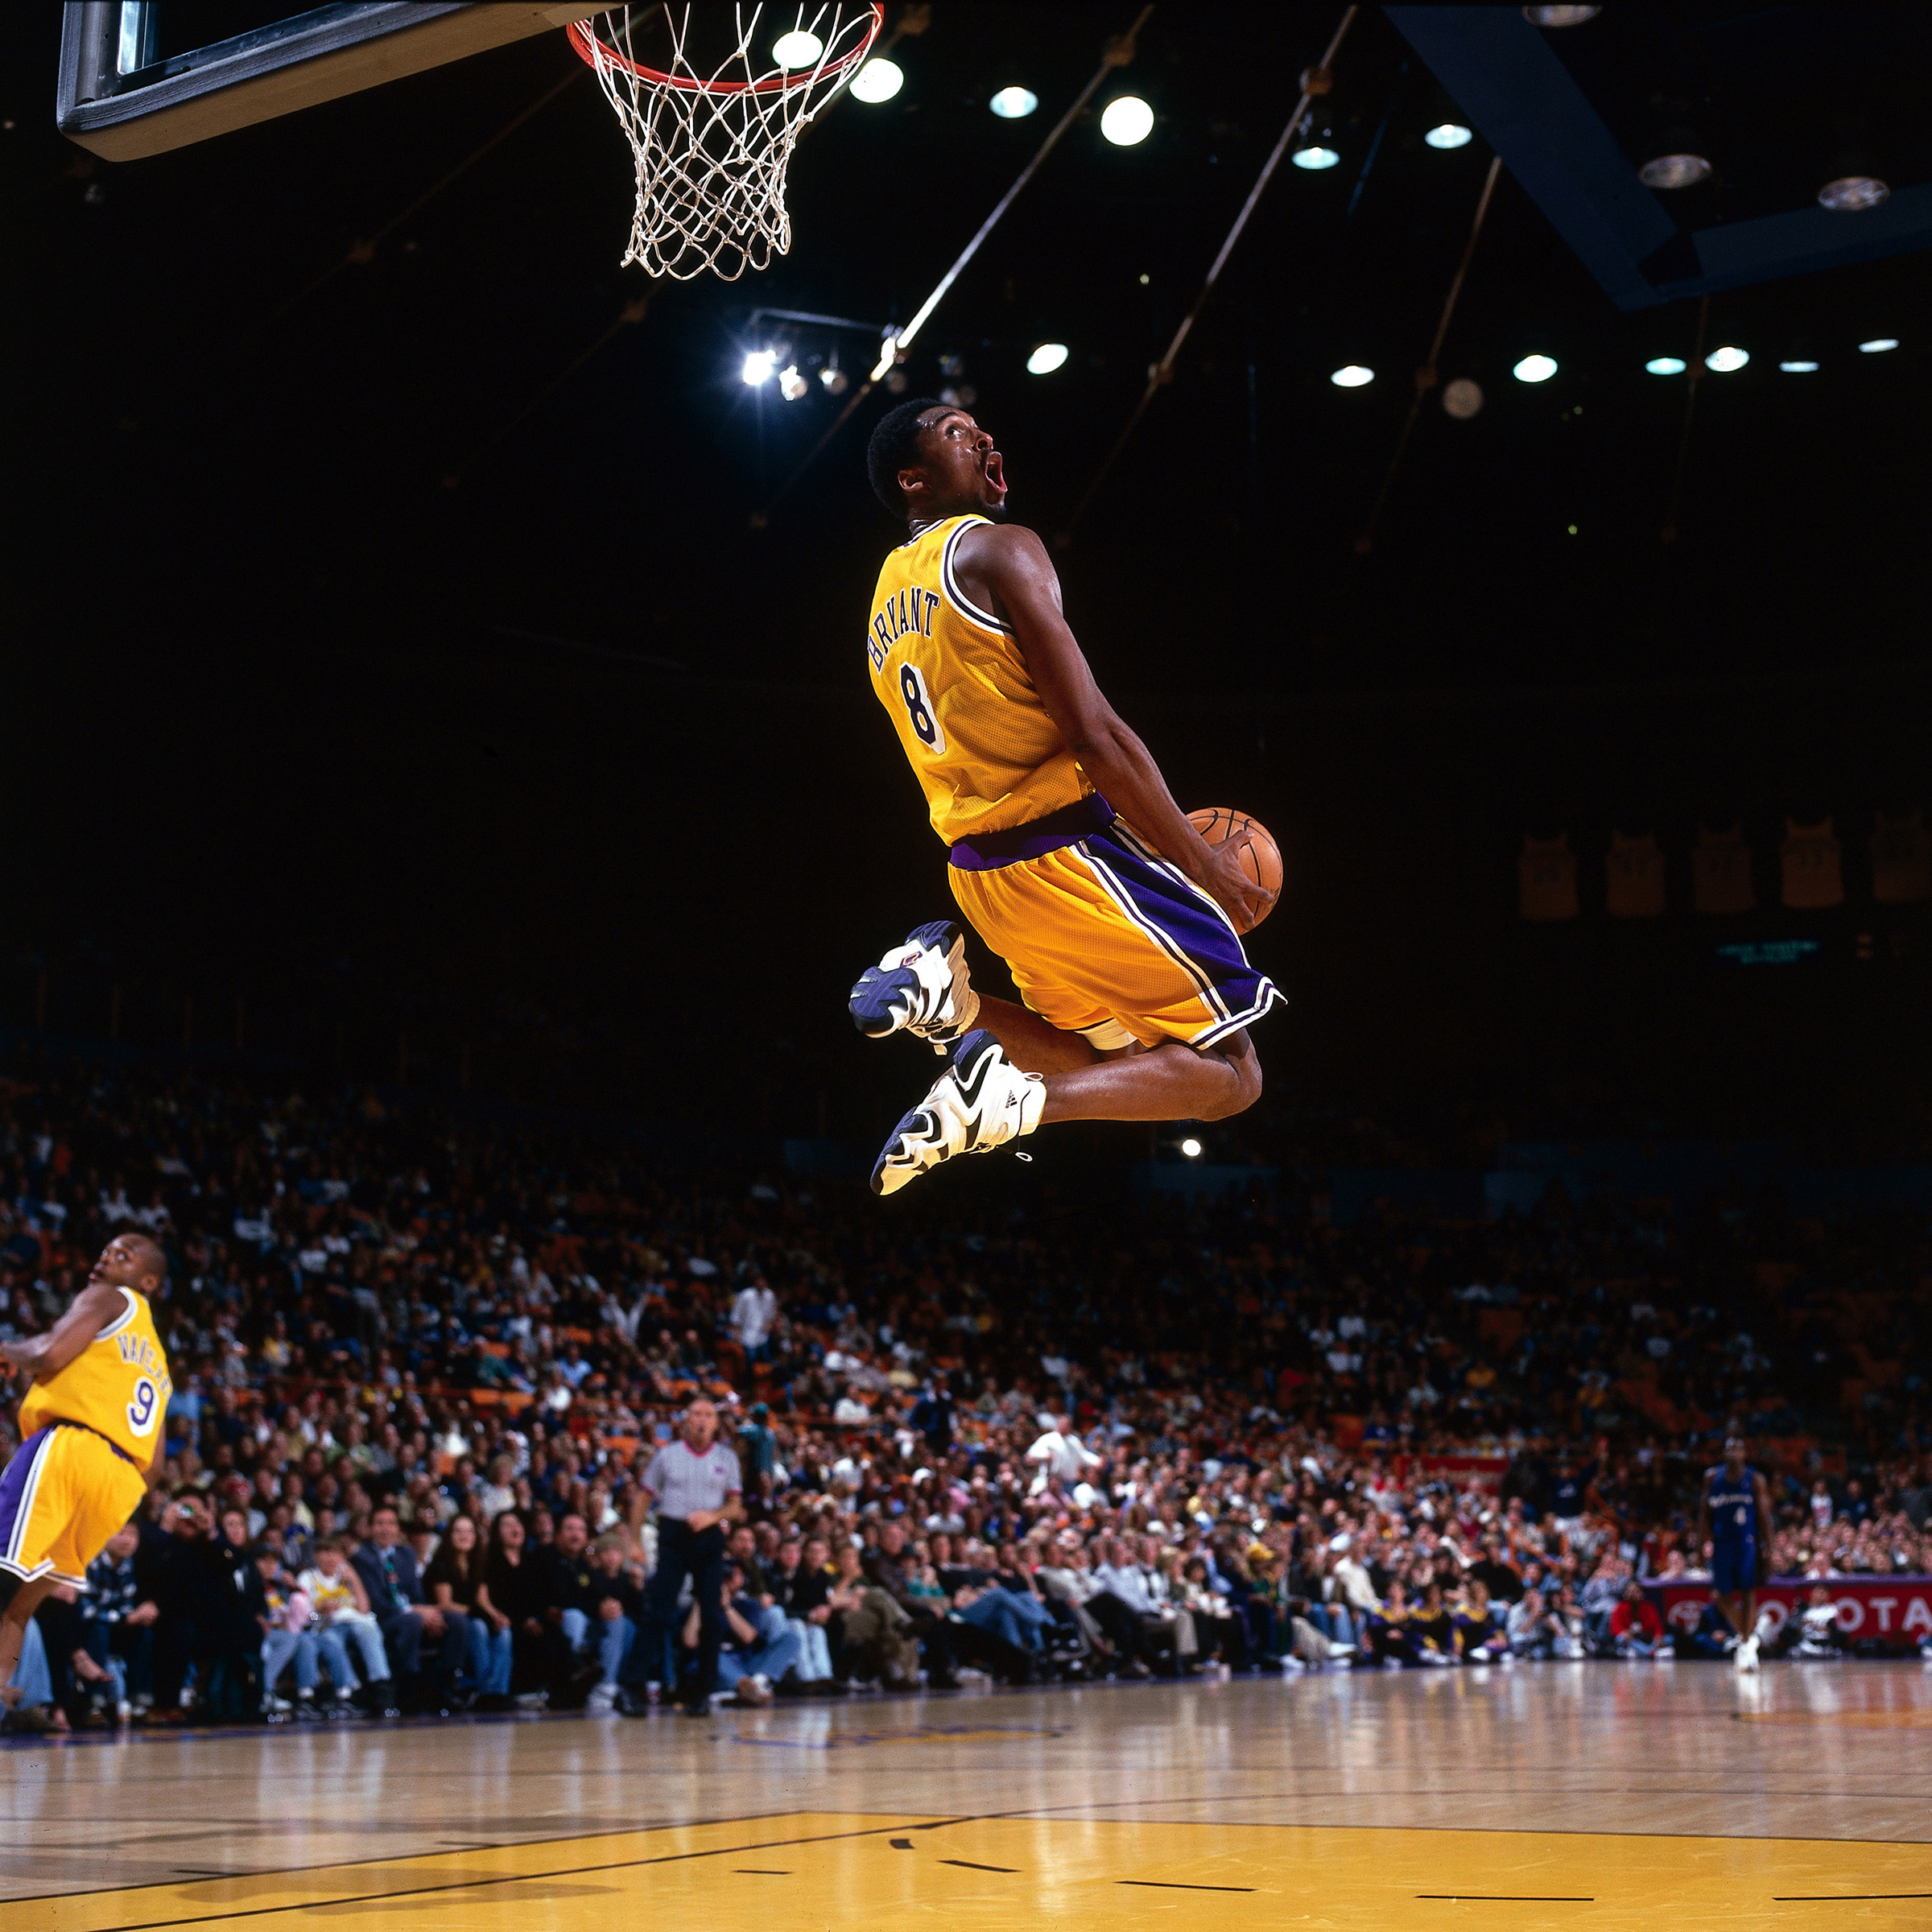 Bryant's aerial displays were among the game's most thrilling ever; here, a reverse slam in a 1998 home game